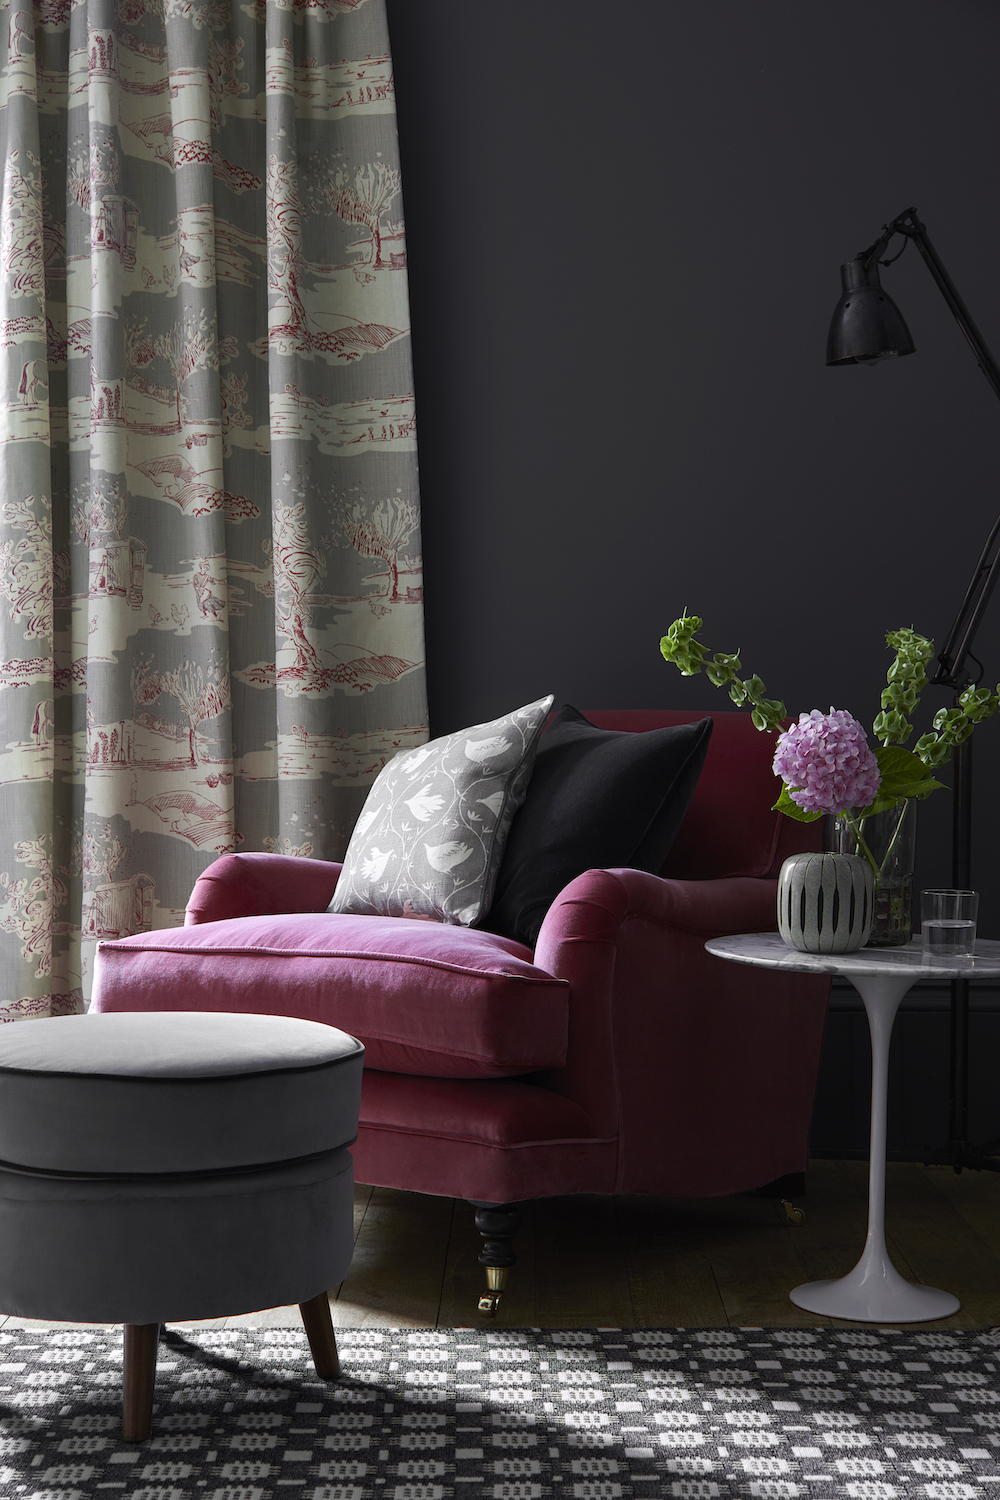 CURTAIN: For the Love of Rose Clay, Damson LOVE-37-45 £54/mtr; TRADITIONAL CHAIR: Rose Velvet VELVET-76 £58/mtr; CERNEY FOOTSTOOL: Elephant Velvet VELVET-75 £58/mtr piped in Thunder Velvet VELVET-74 £58/mtr; Cushion (back): Self piped and zipped Thunder Velvet VELVET-74 £58/mtr; CUSHION (front): Branching Out Scree BRANCH-67 £52/mtr piped in Plain Linen Charcoal PLAIN-38 £48/mtr; RUG: Dark Grey Tapestry by Solva Woolen Mill £99.75 each; PAINT: Scree 227 by Little Greene Paint Company £42, per 2.5 ltr